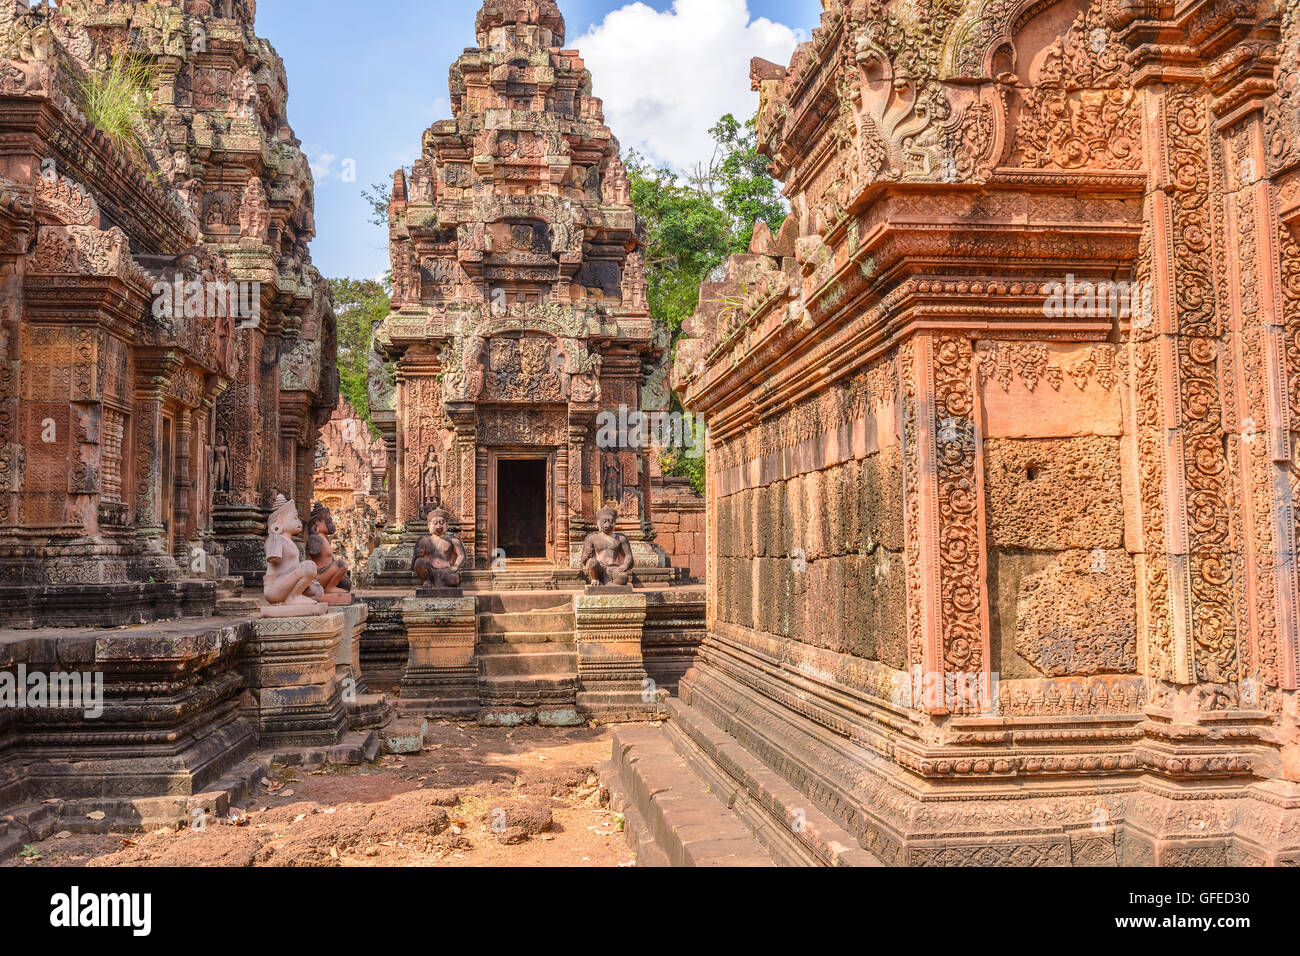 Banteay Srei Temple, Siem Reap, Cambodia - Stock Image